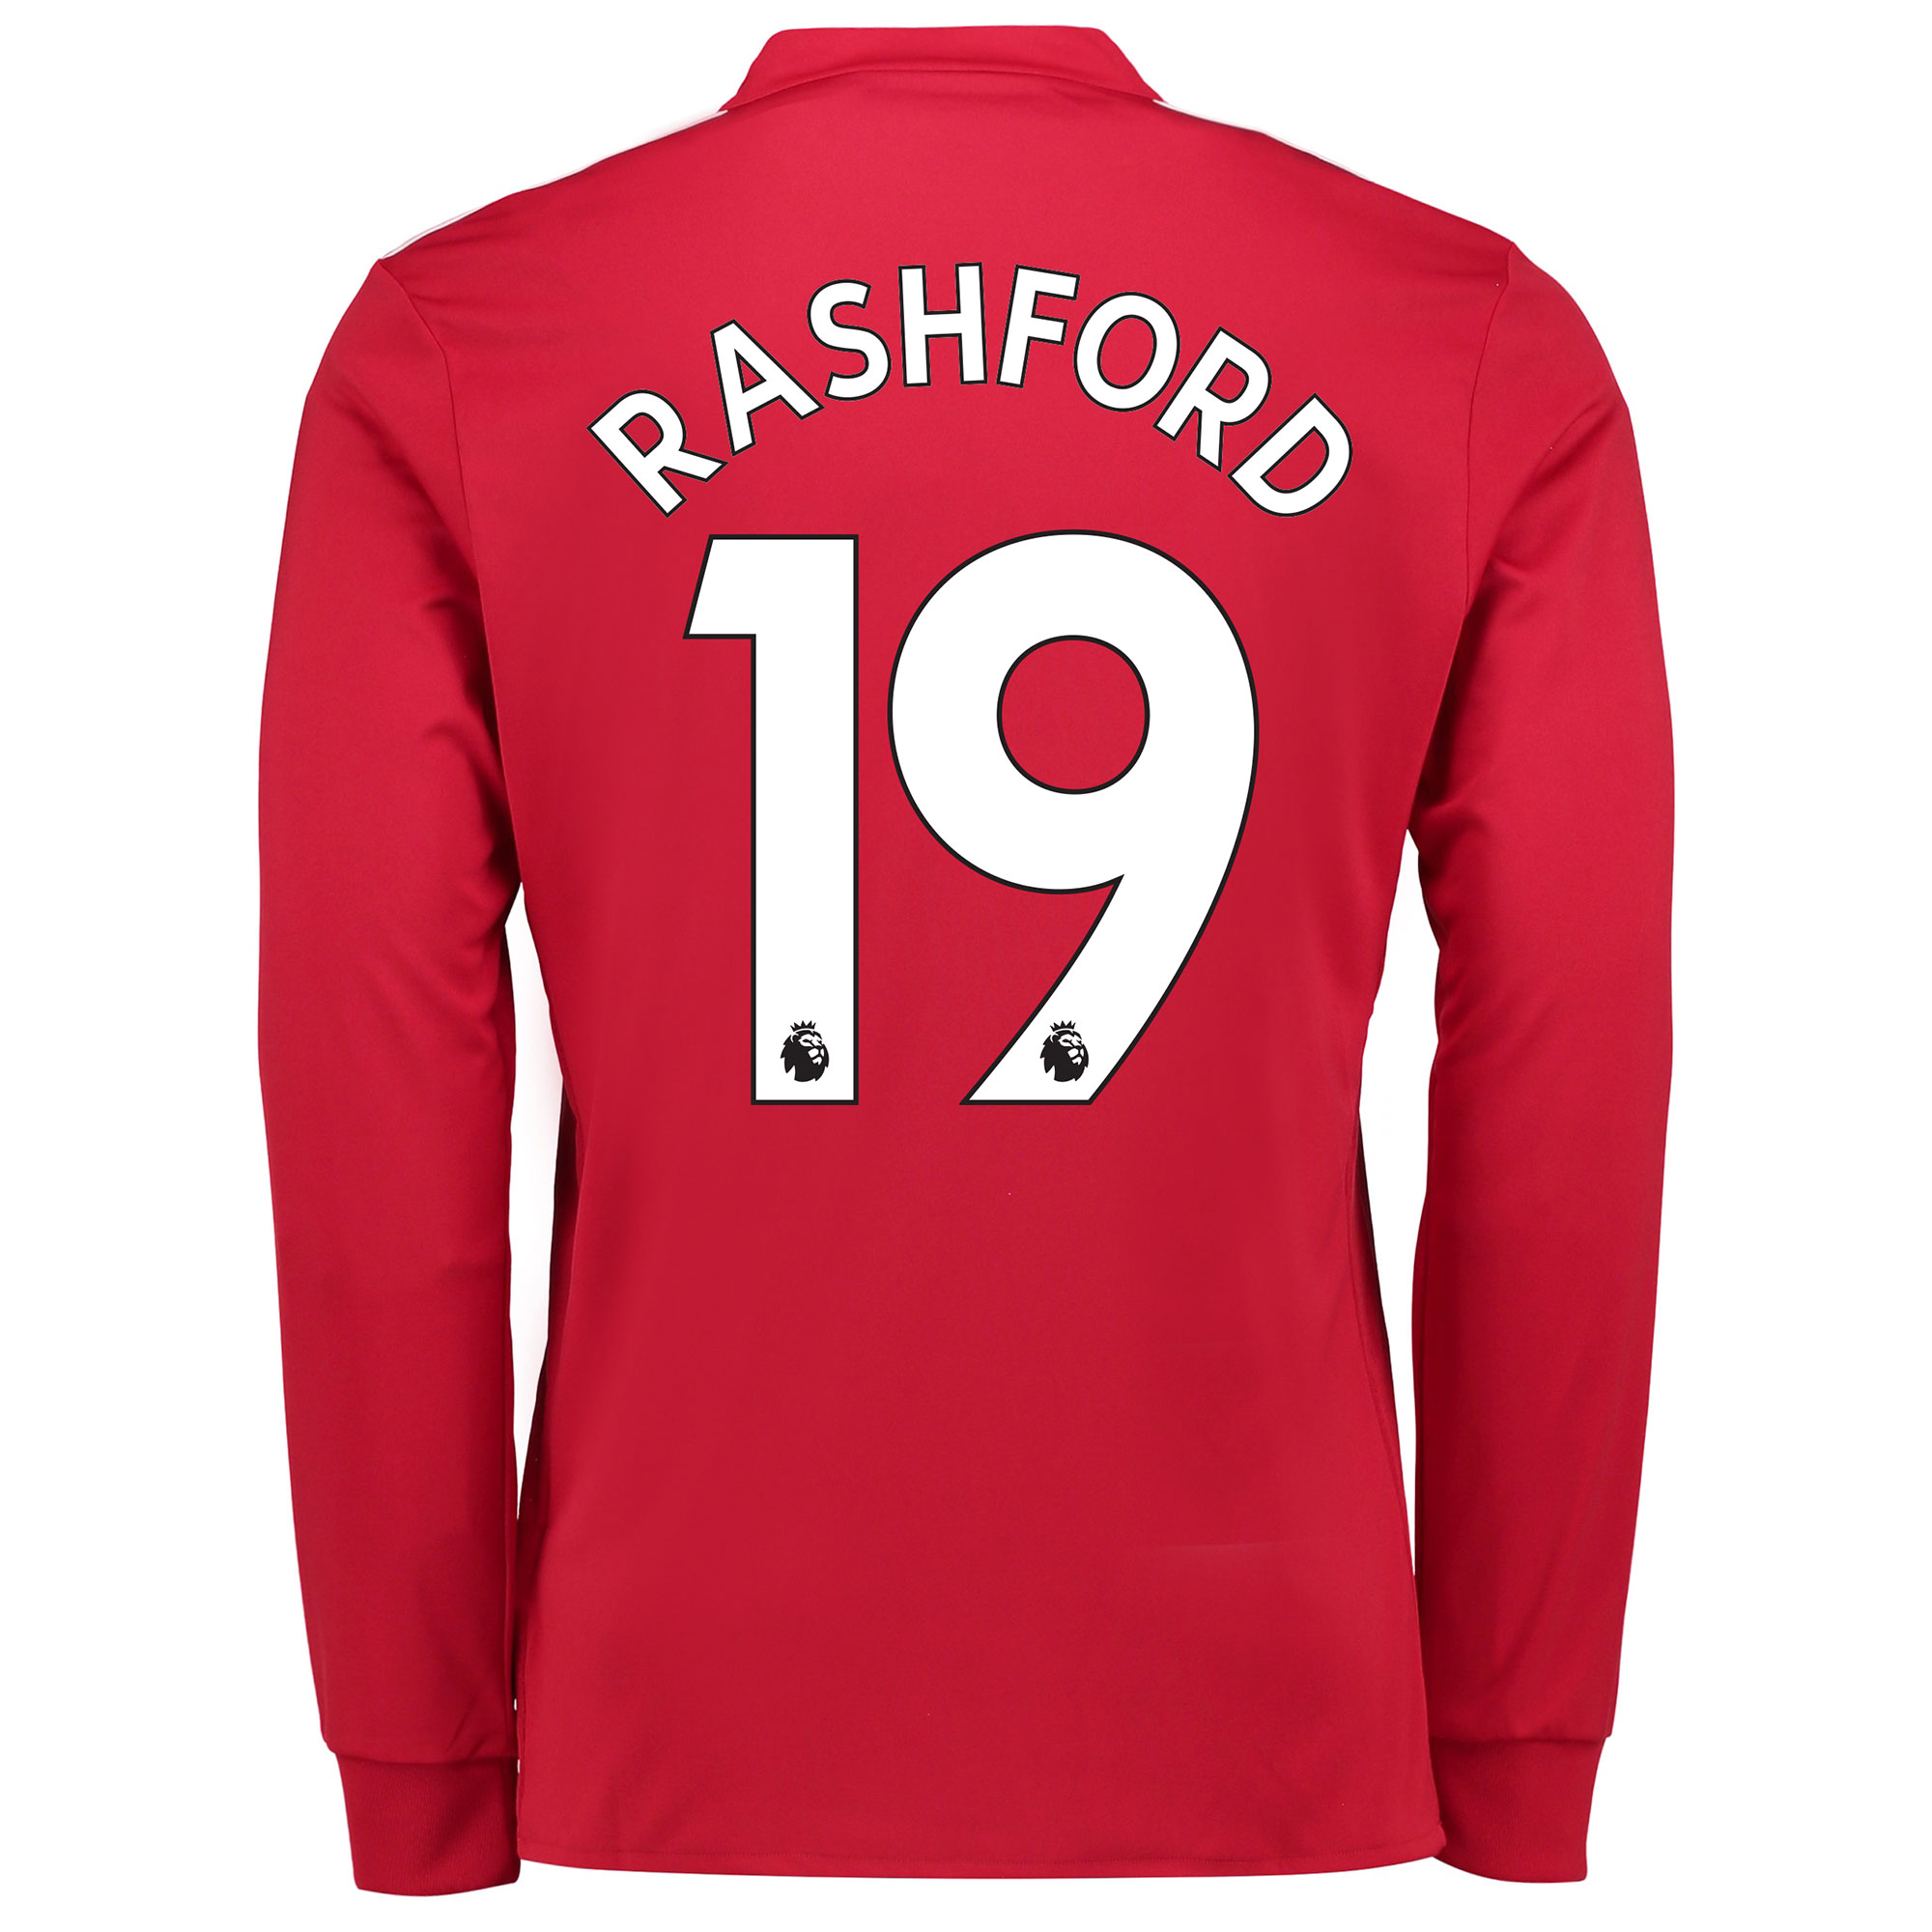 Manchester United Home Shirt 2017-18 - Long Sleeve with Rashford 19 pr